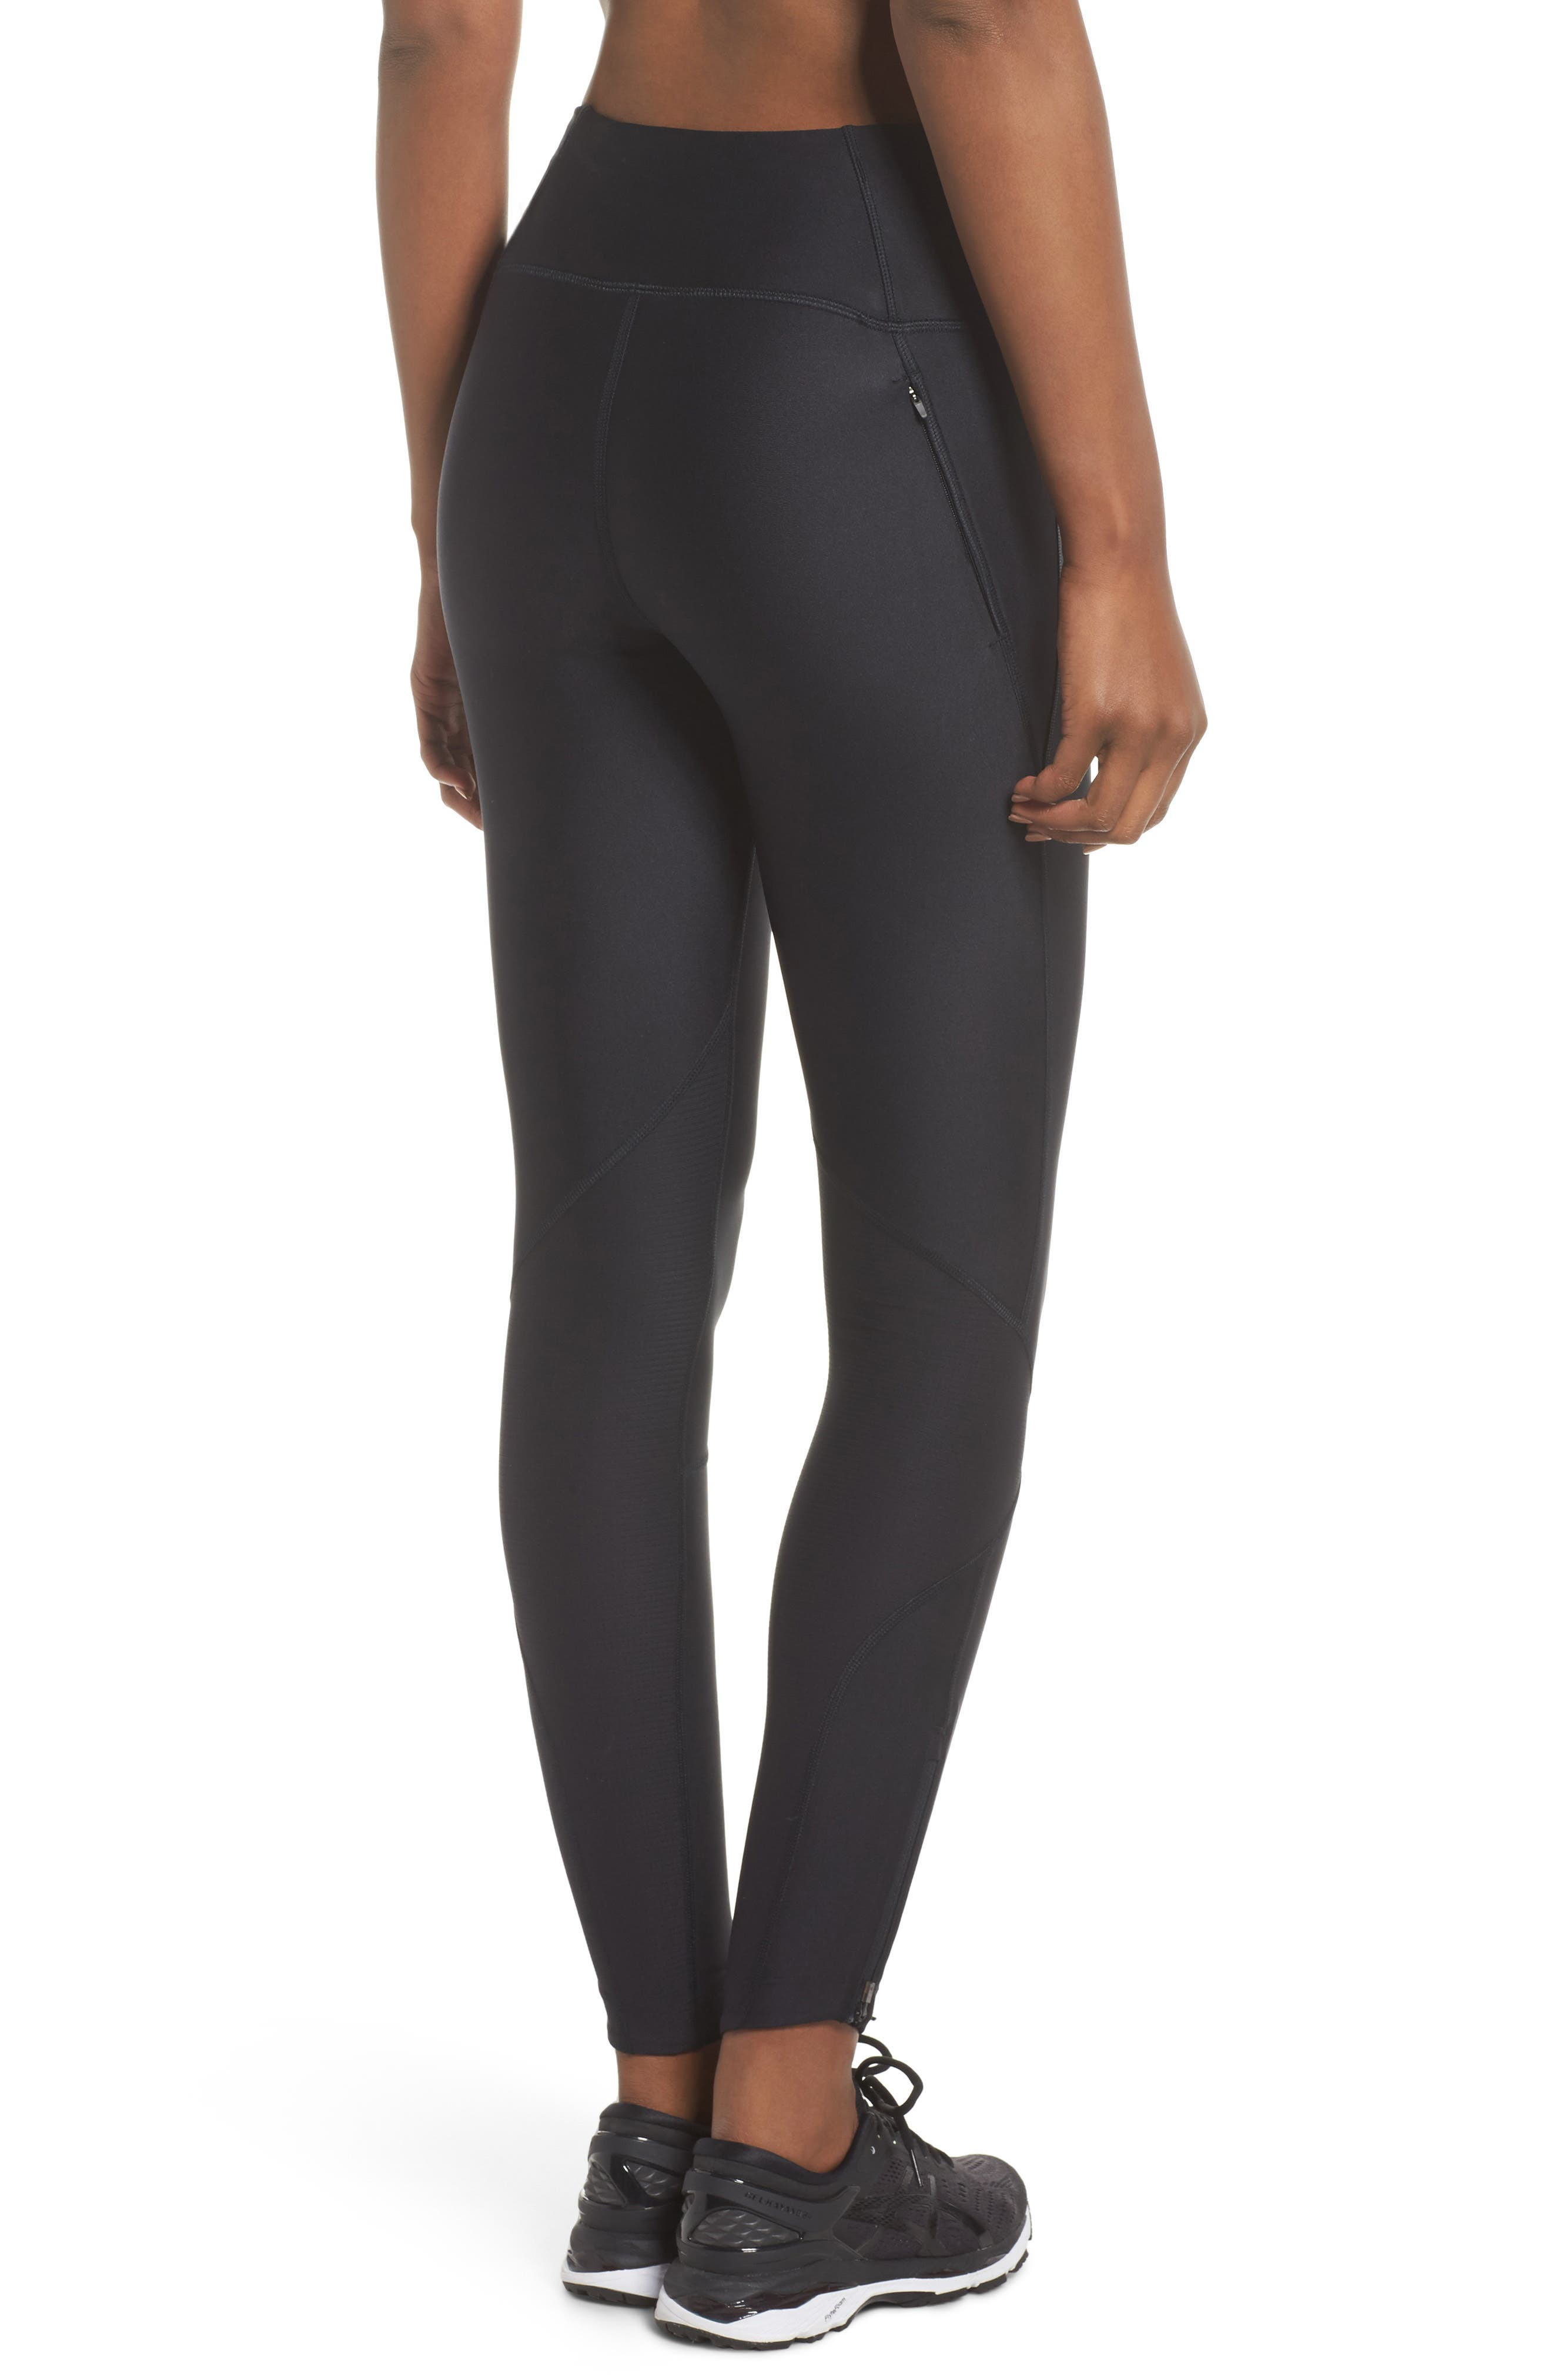 Fly Fast Tights,                             Alternate thumbnail 2, color,